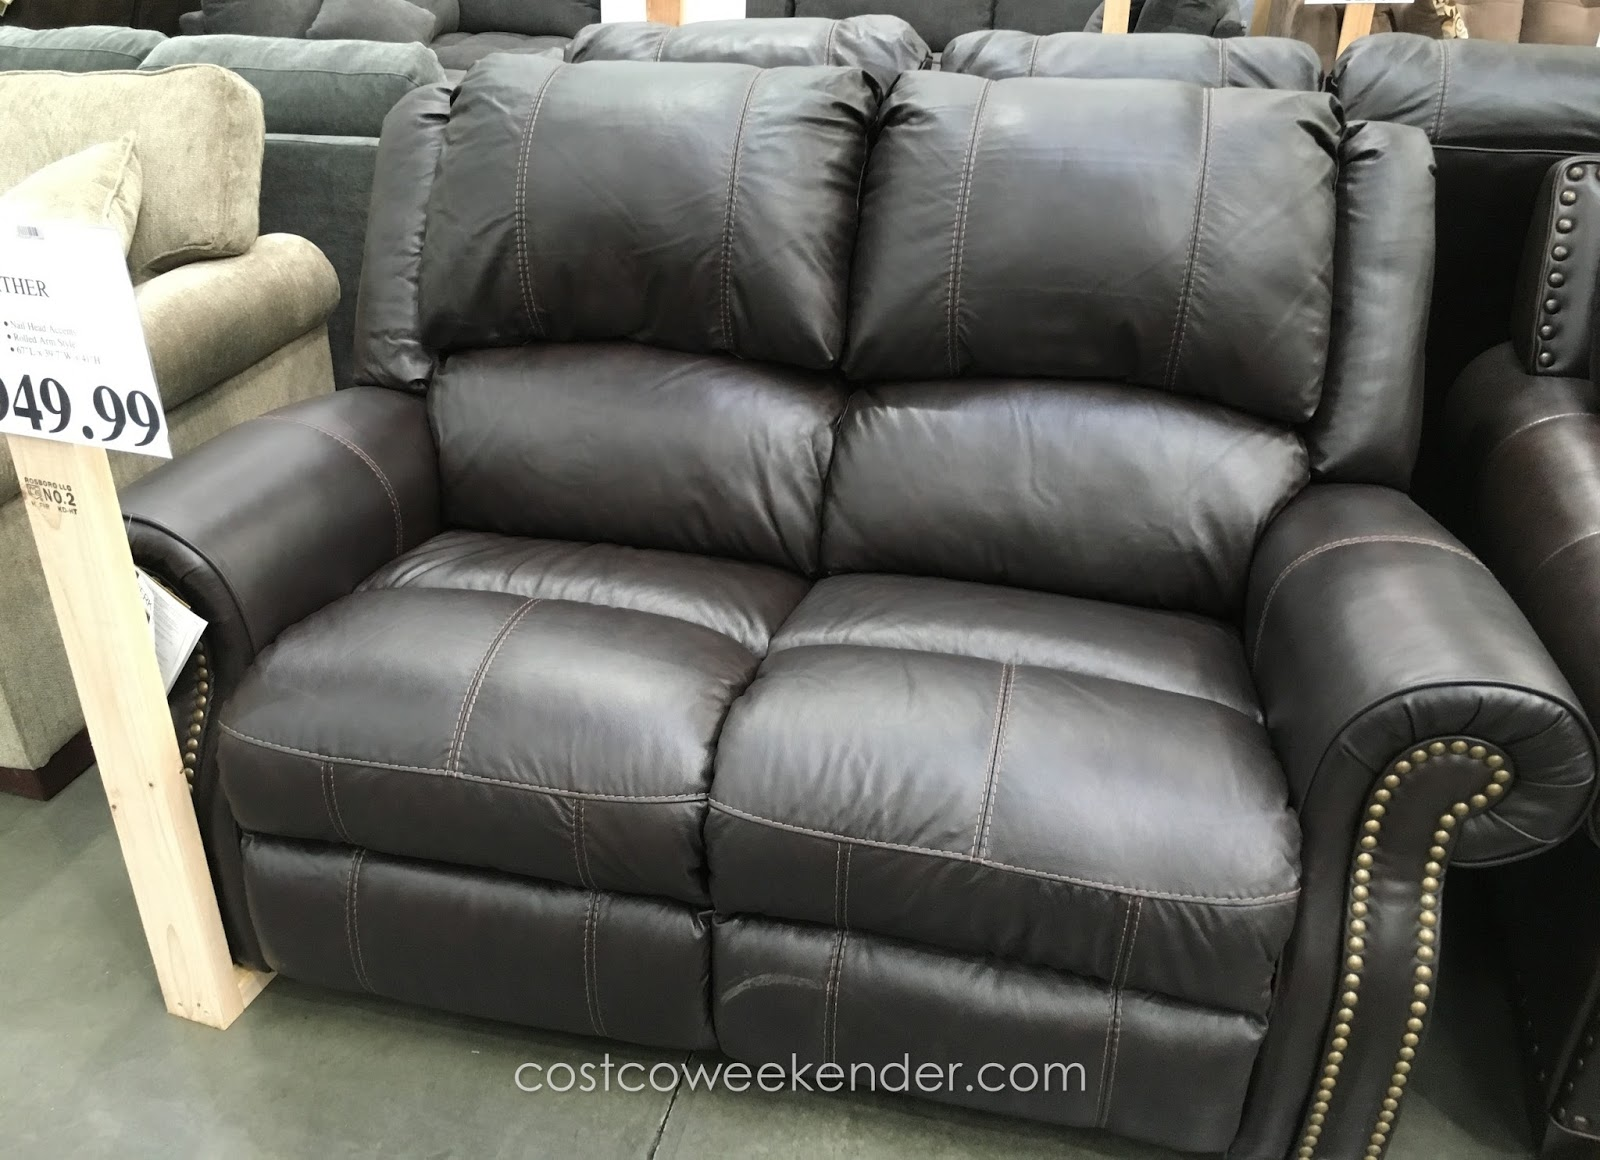 Berkline reclining leather loveseat costco weekender Leather loveseat recliners